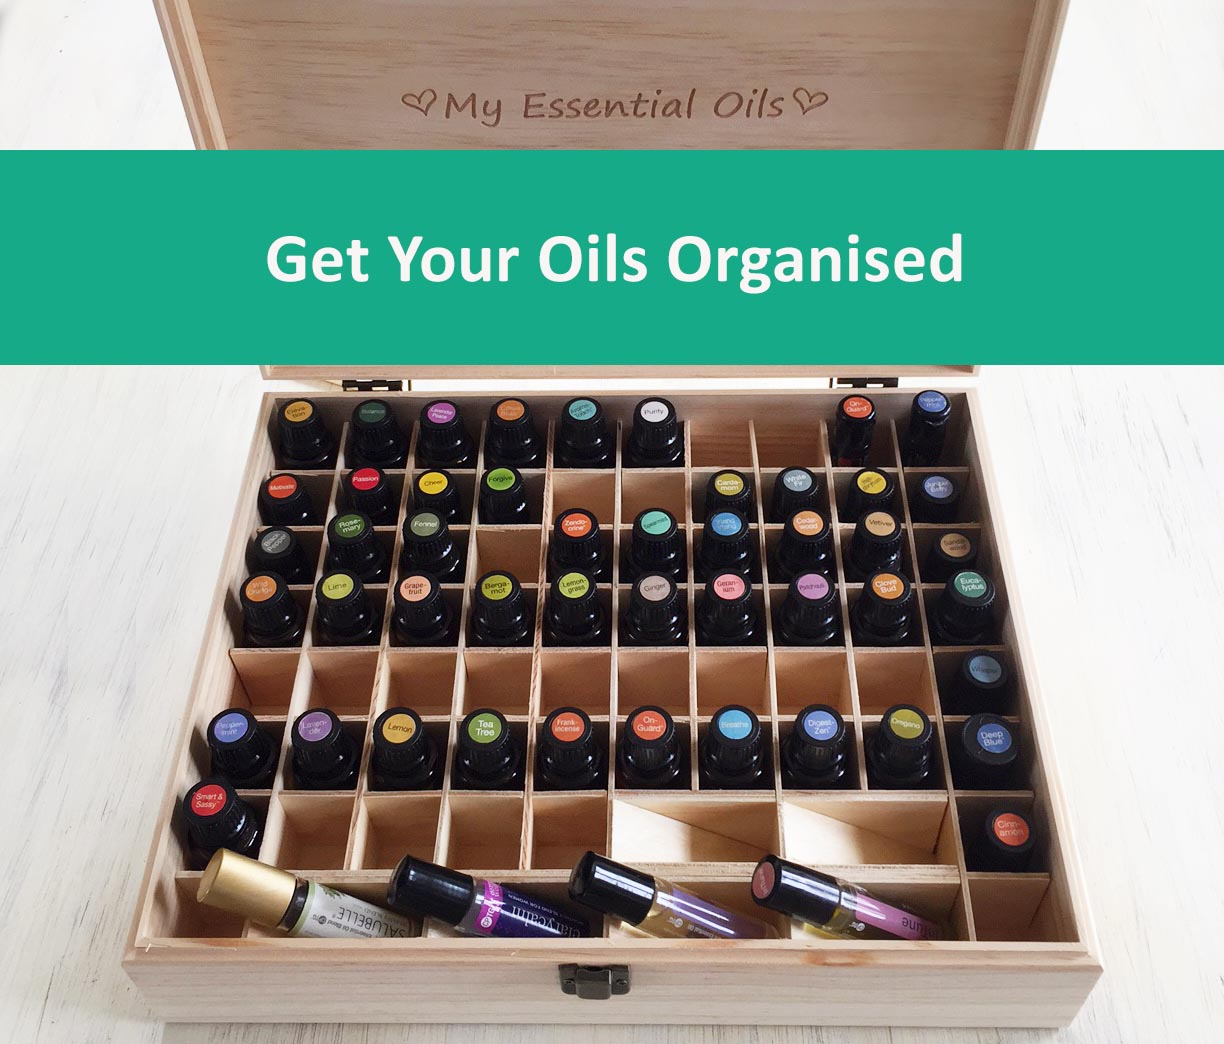 Essential Oil Wooden Display Box by Tania Zaetta get organised doTERRA